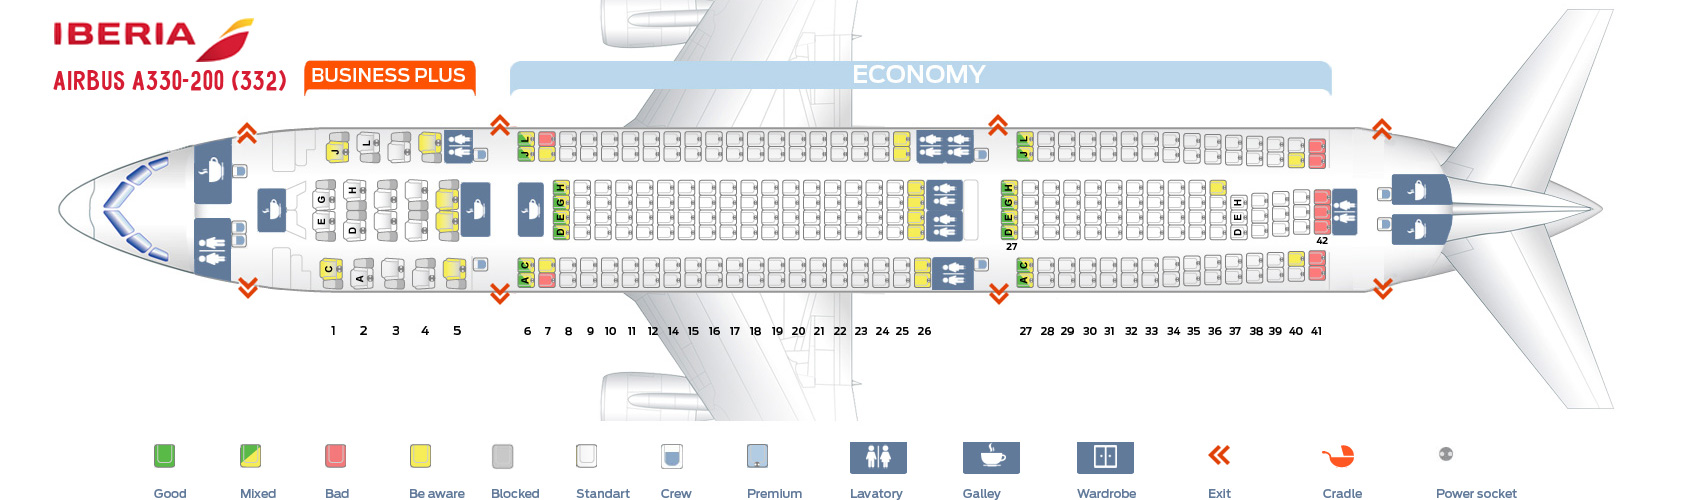 airline seat assignments To request seat assignments, please contact our air tahiti nui reservations office at least 72 hours prior to departure.